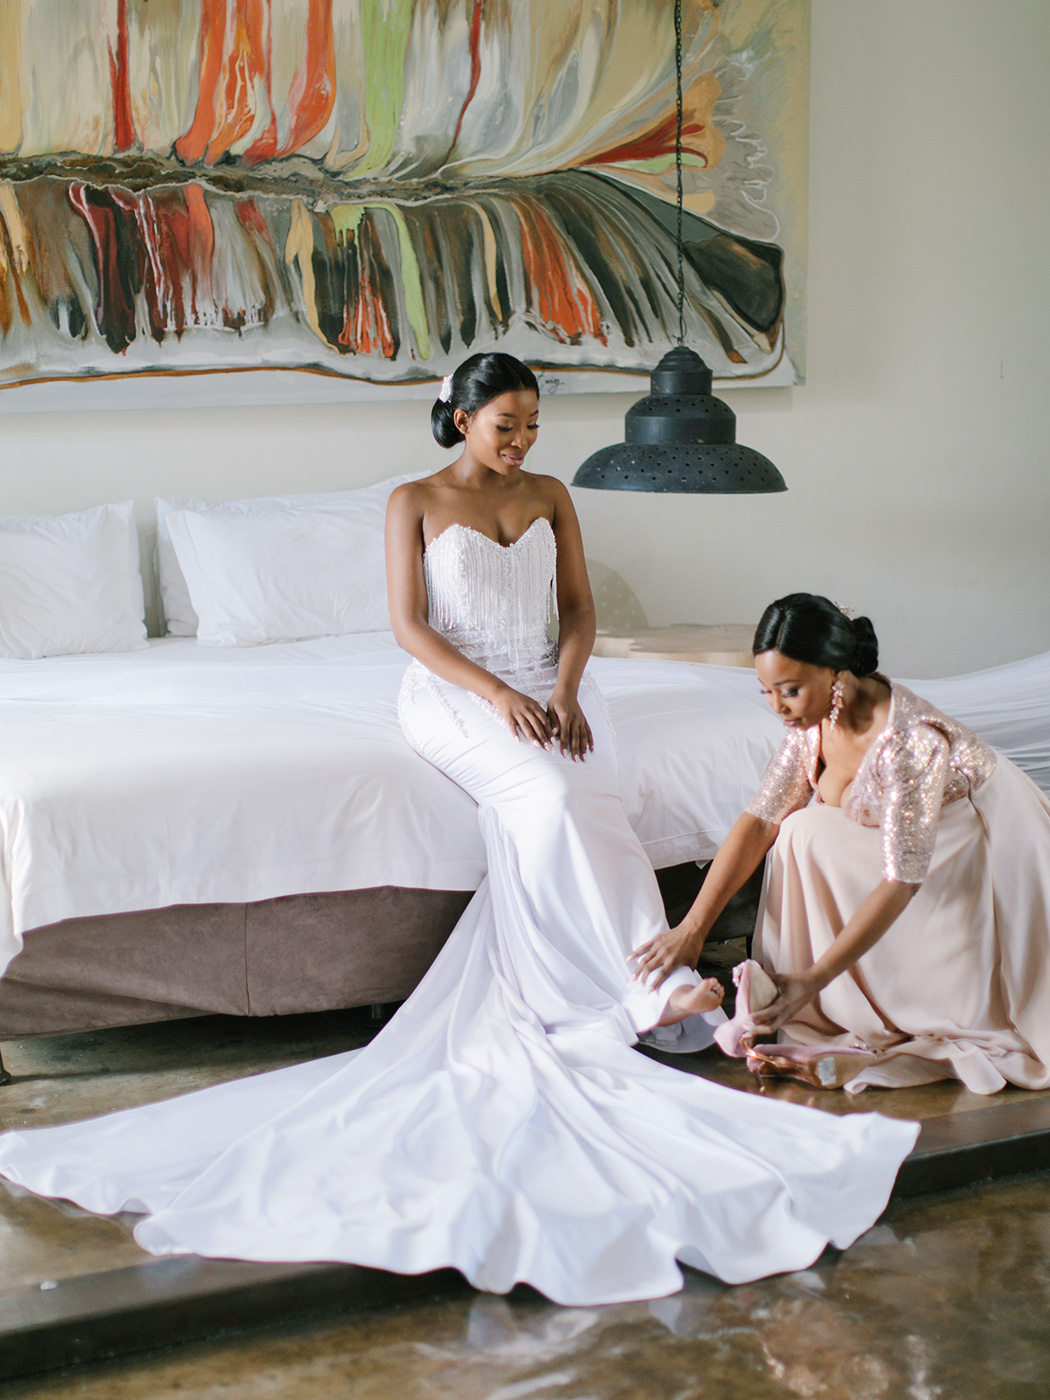 Getting Ready | Rensche Mari Photography